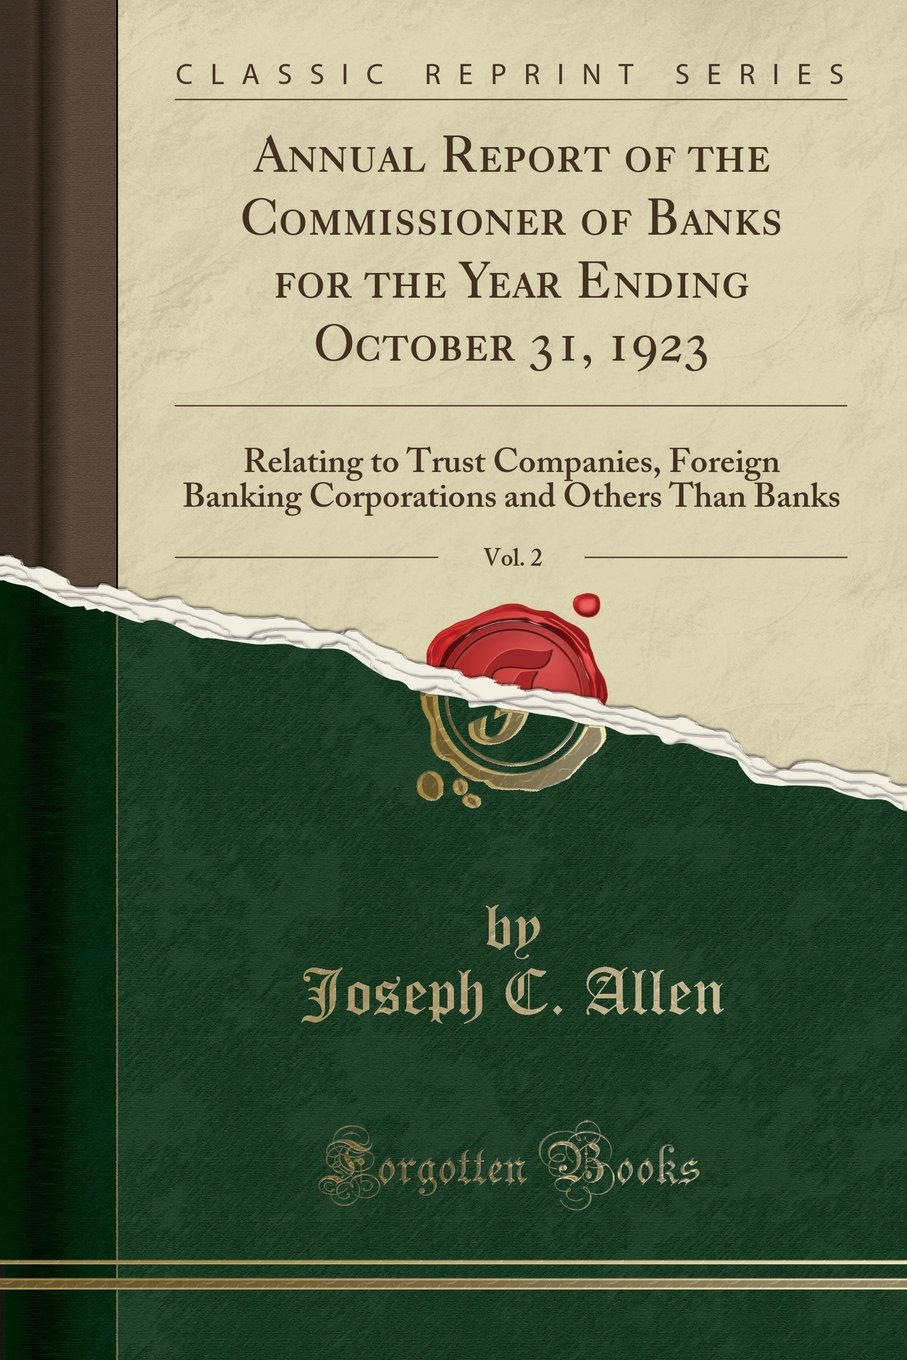 Download Annual Report of the Commissioner of Banks for the Year Ending October 31, 1923, Vol. 2: Relating to Trust Companies, Foreign Banking Corporations and Others Than Banks (Classic Reprint) ebook